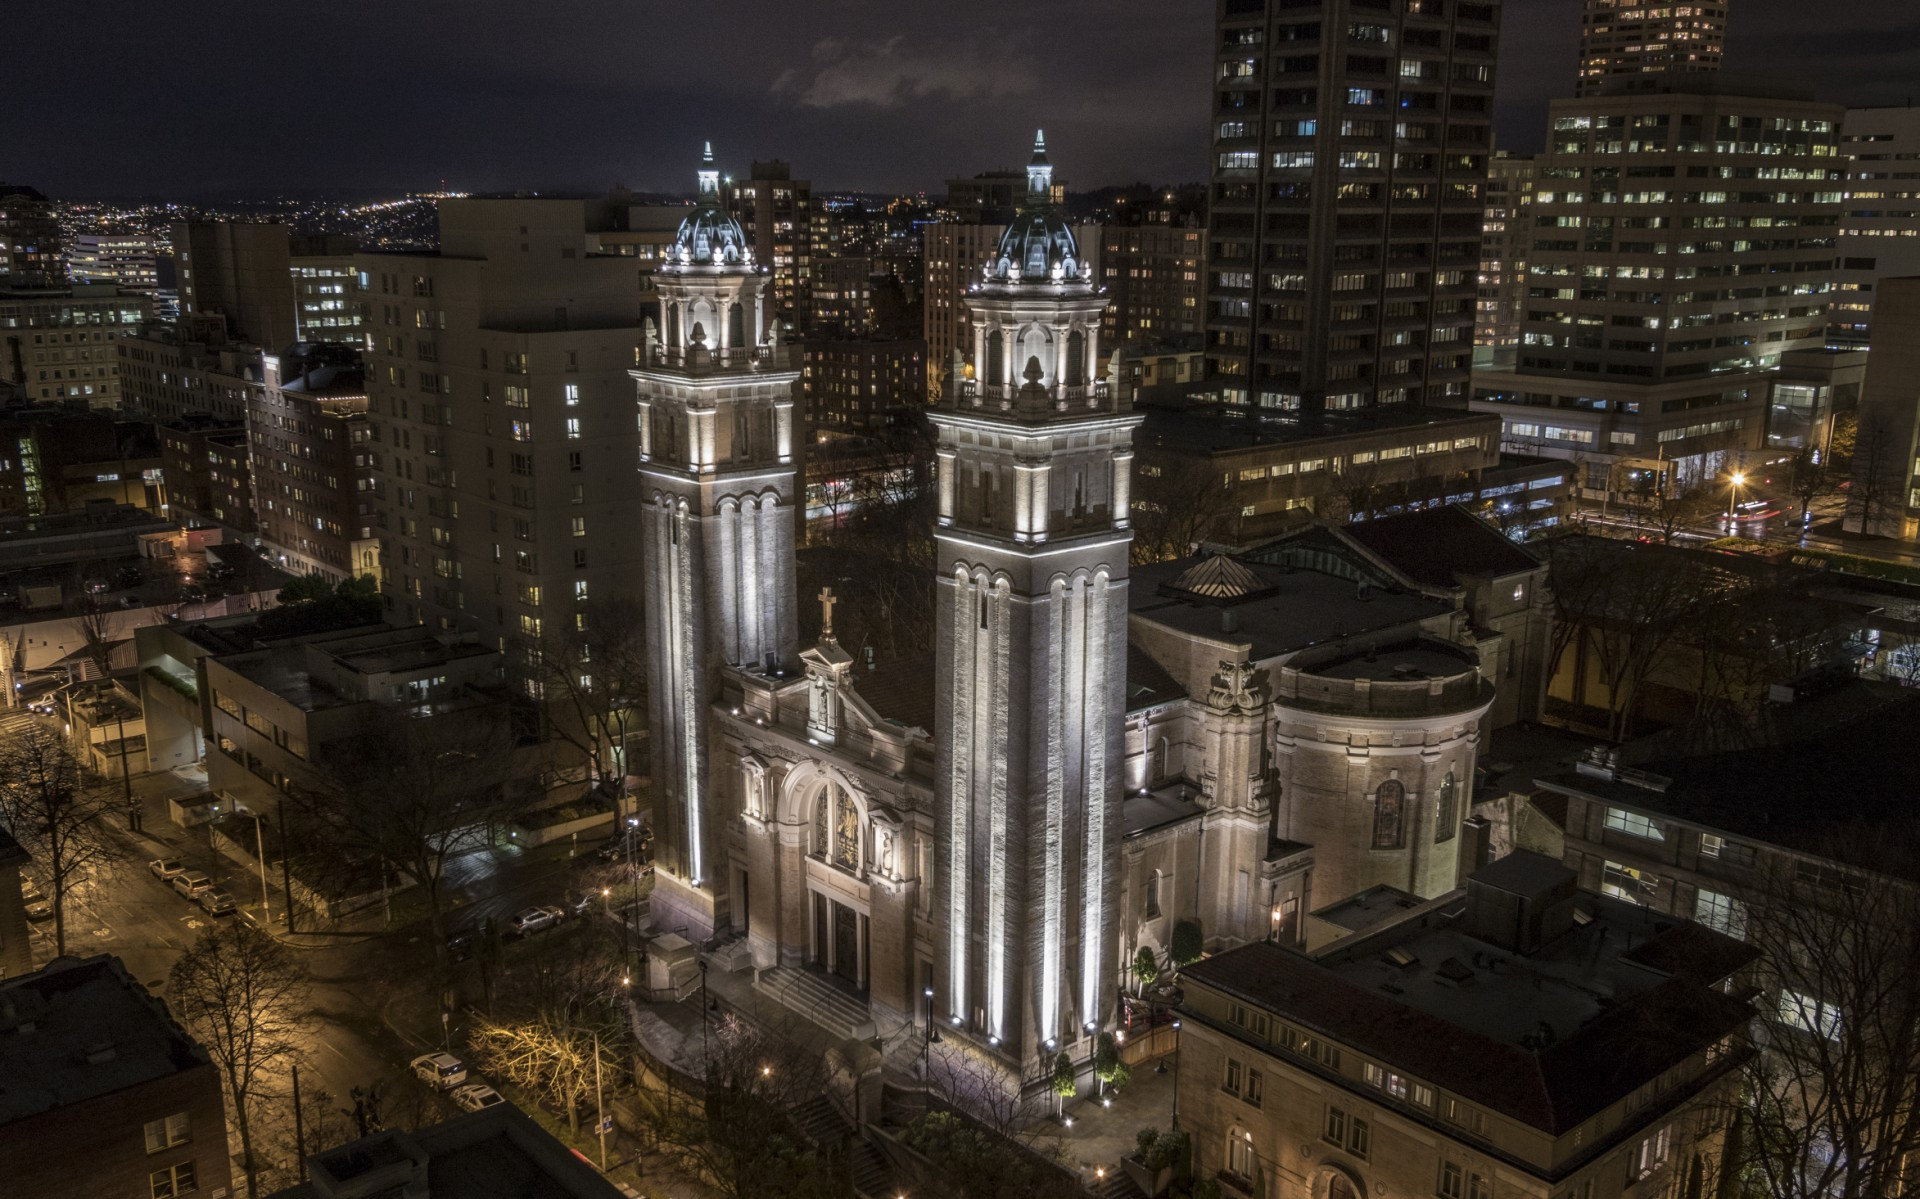 As the cathedral for the Catholic Archdiocese of Seattle, St. James has been welcoming diverse communities since 1907.